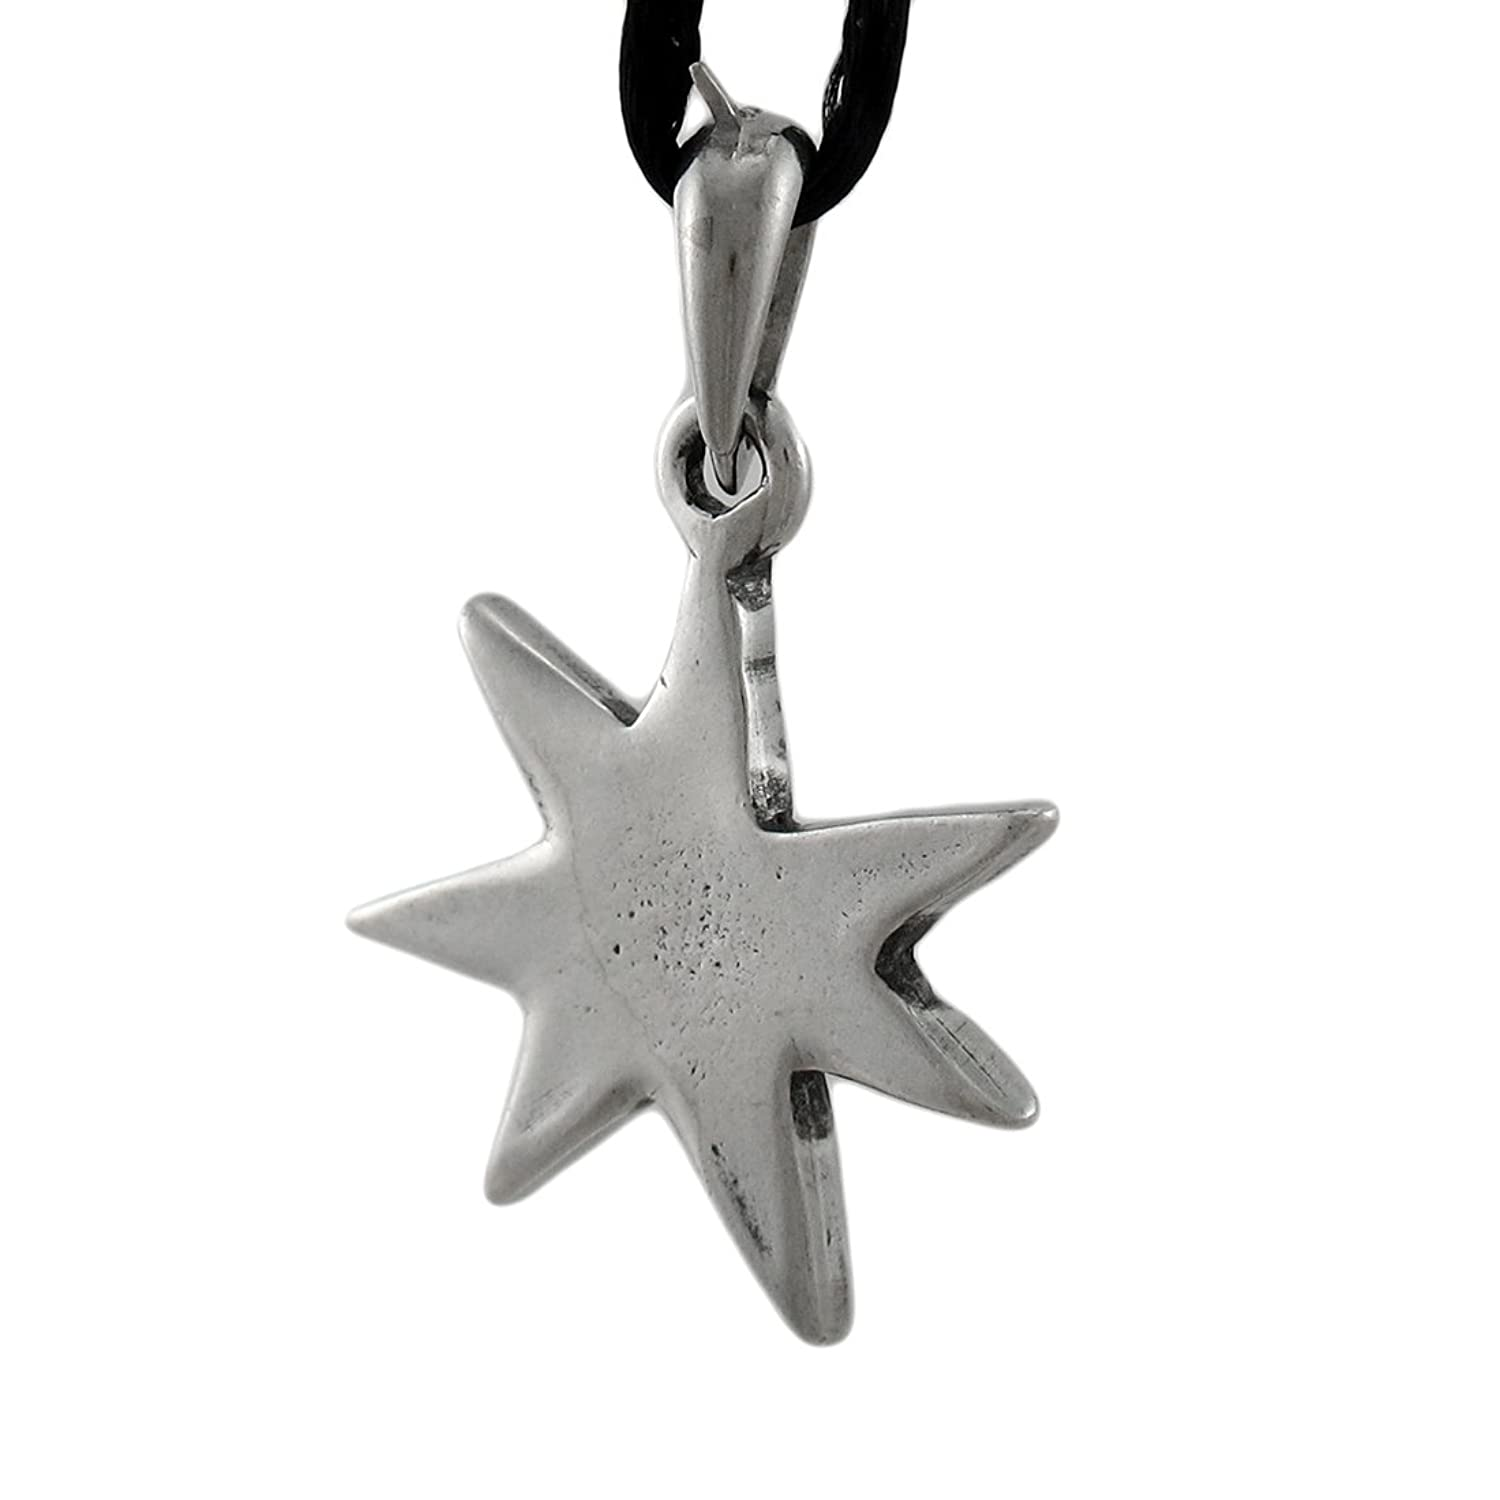 Stainless steel mens pendant necklaces elven star 7 pointed stainless steel mens pendant necklaces elven star 7 pointed heptagram pendant w cord necklace silver model hwp65 amazon aloadofball Choice Image